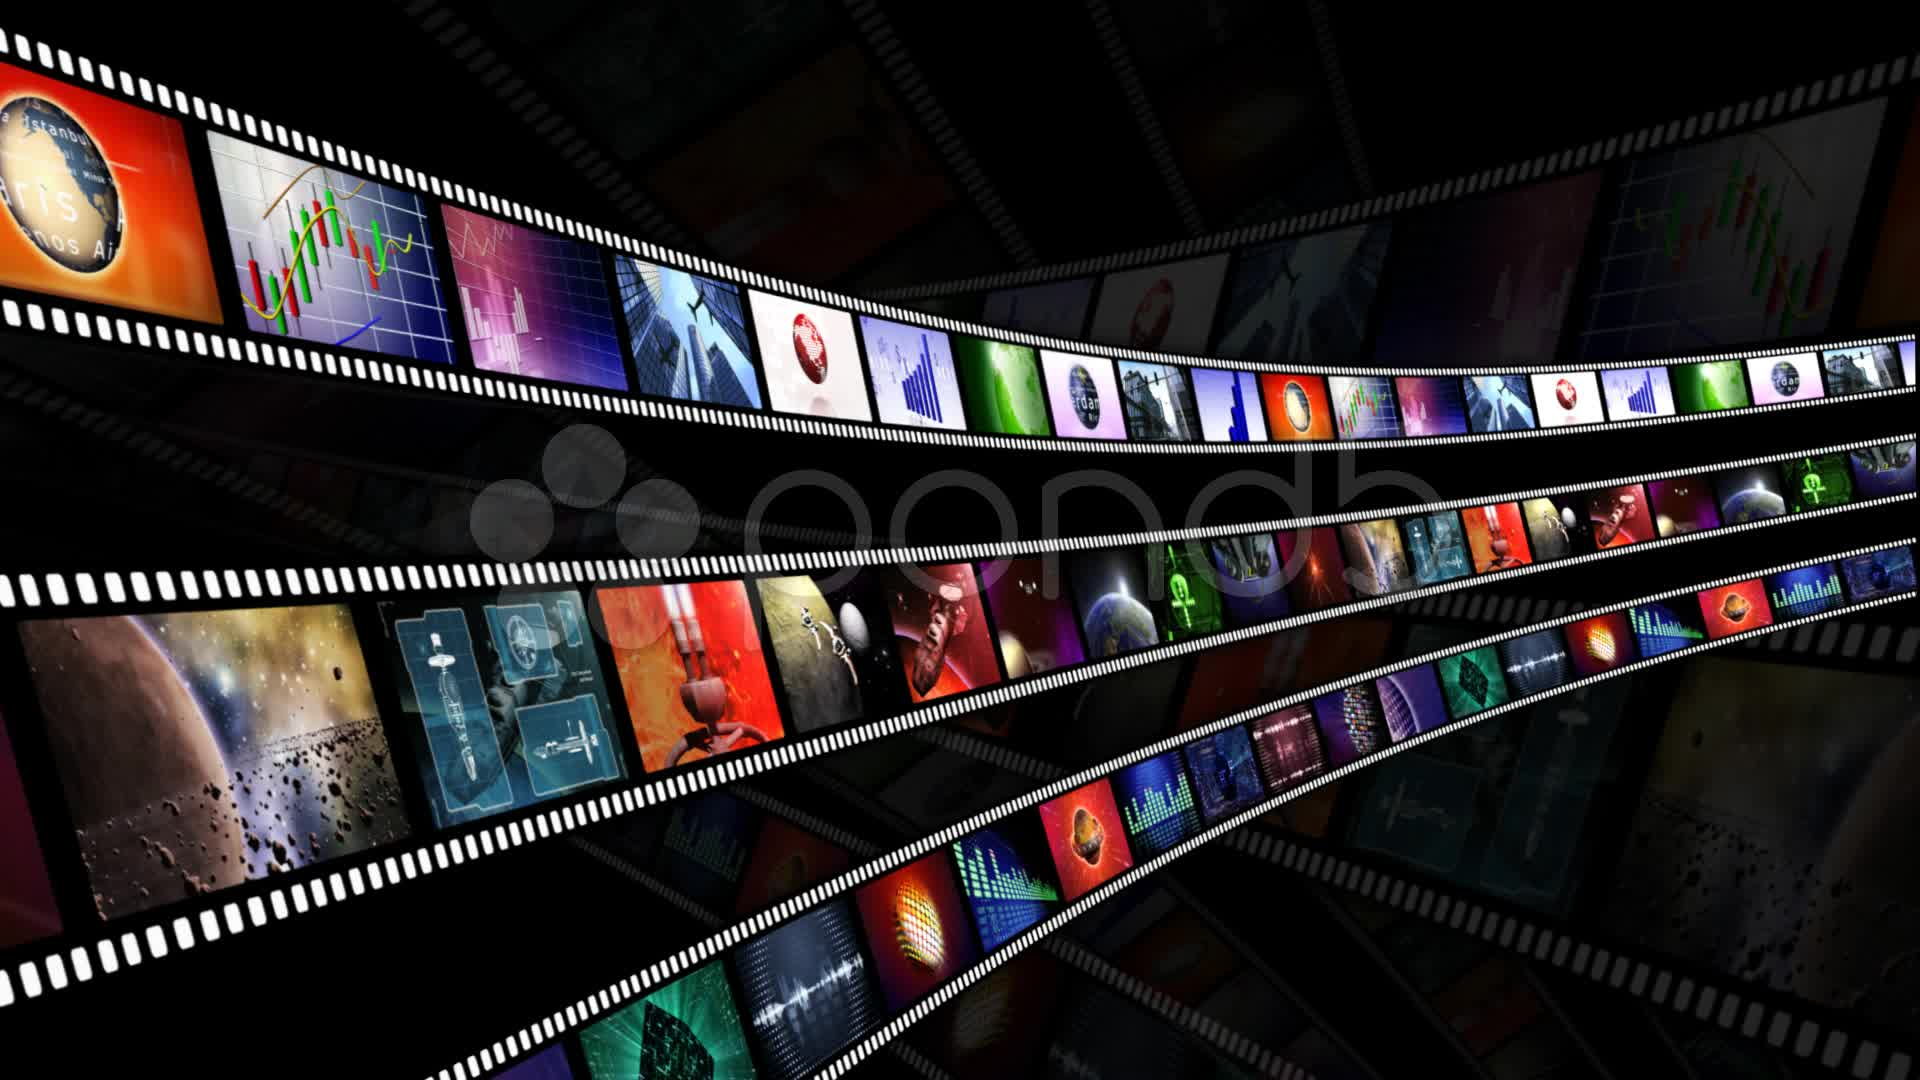 Movies Wallpaper - WallpaperSafari